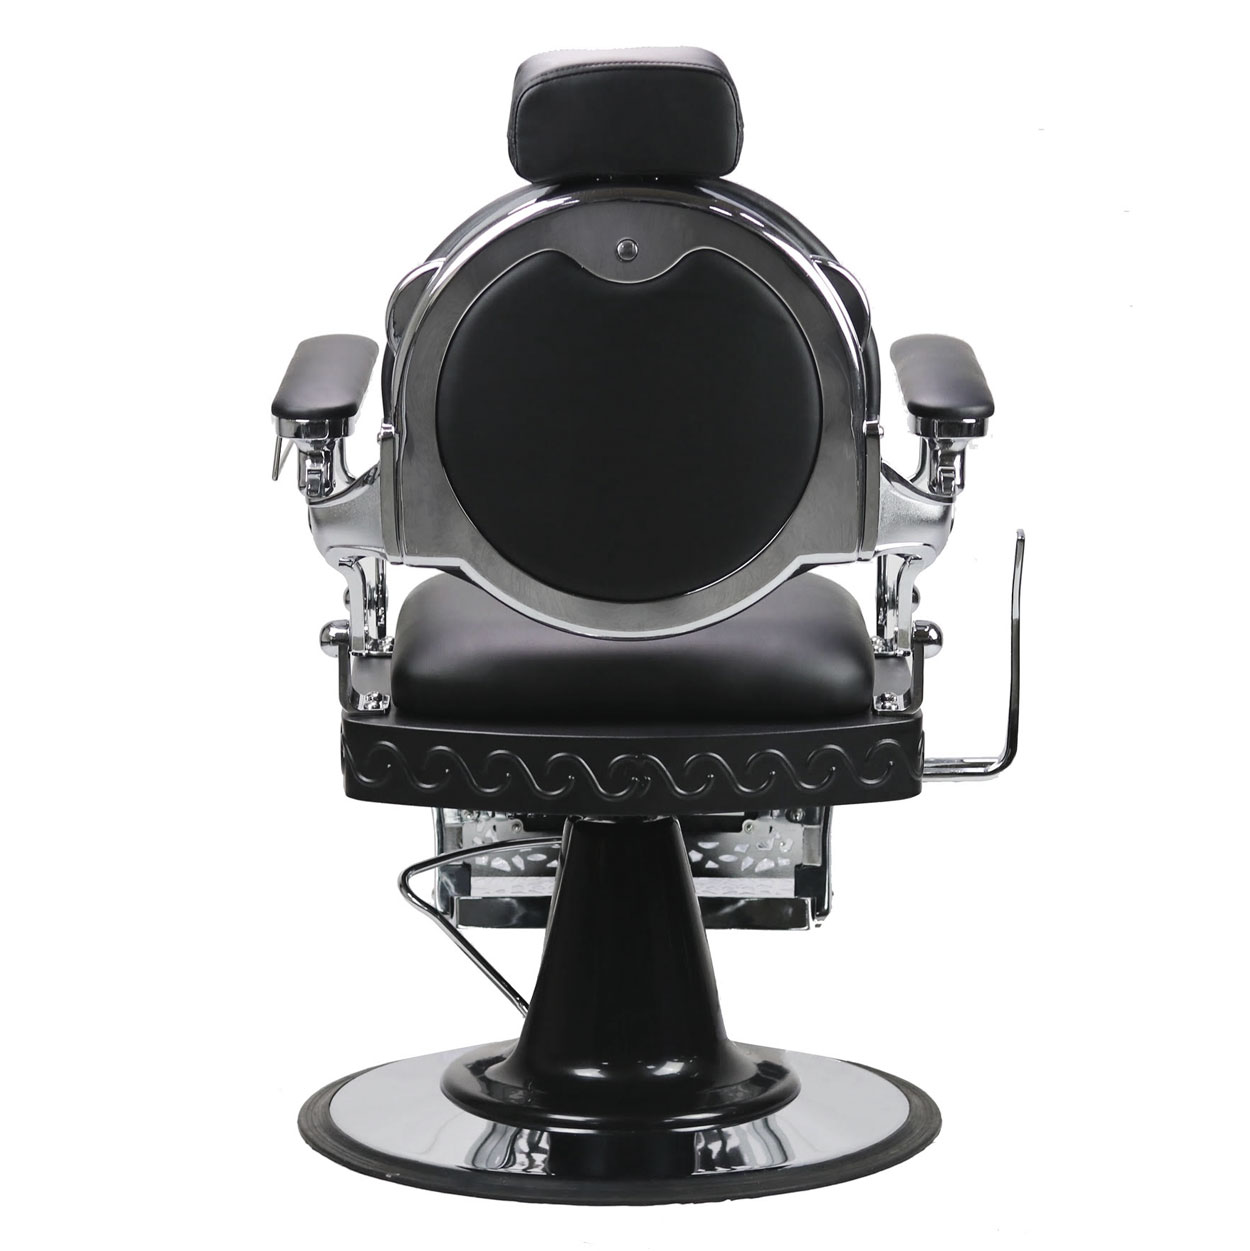 Sutton Vintage Barber Chair alternative product image 6